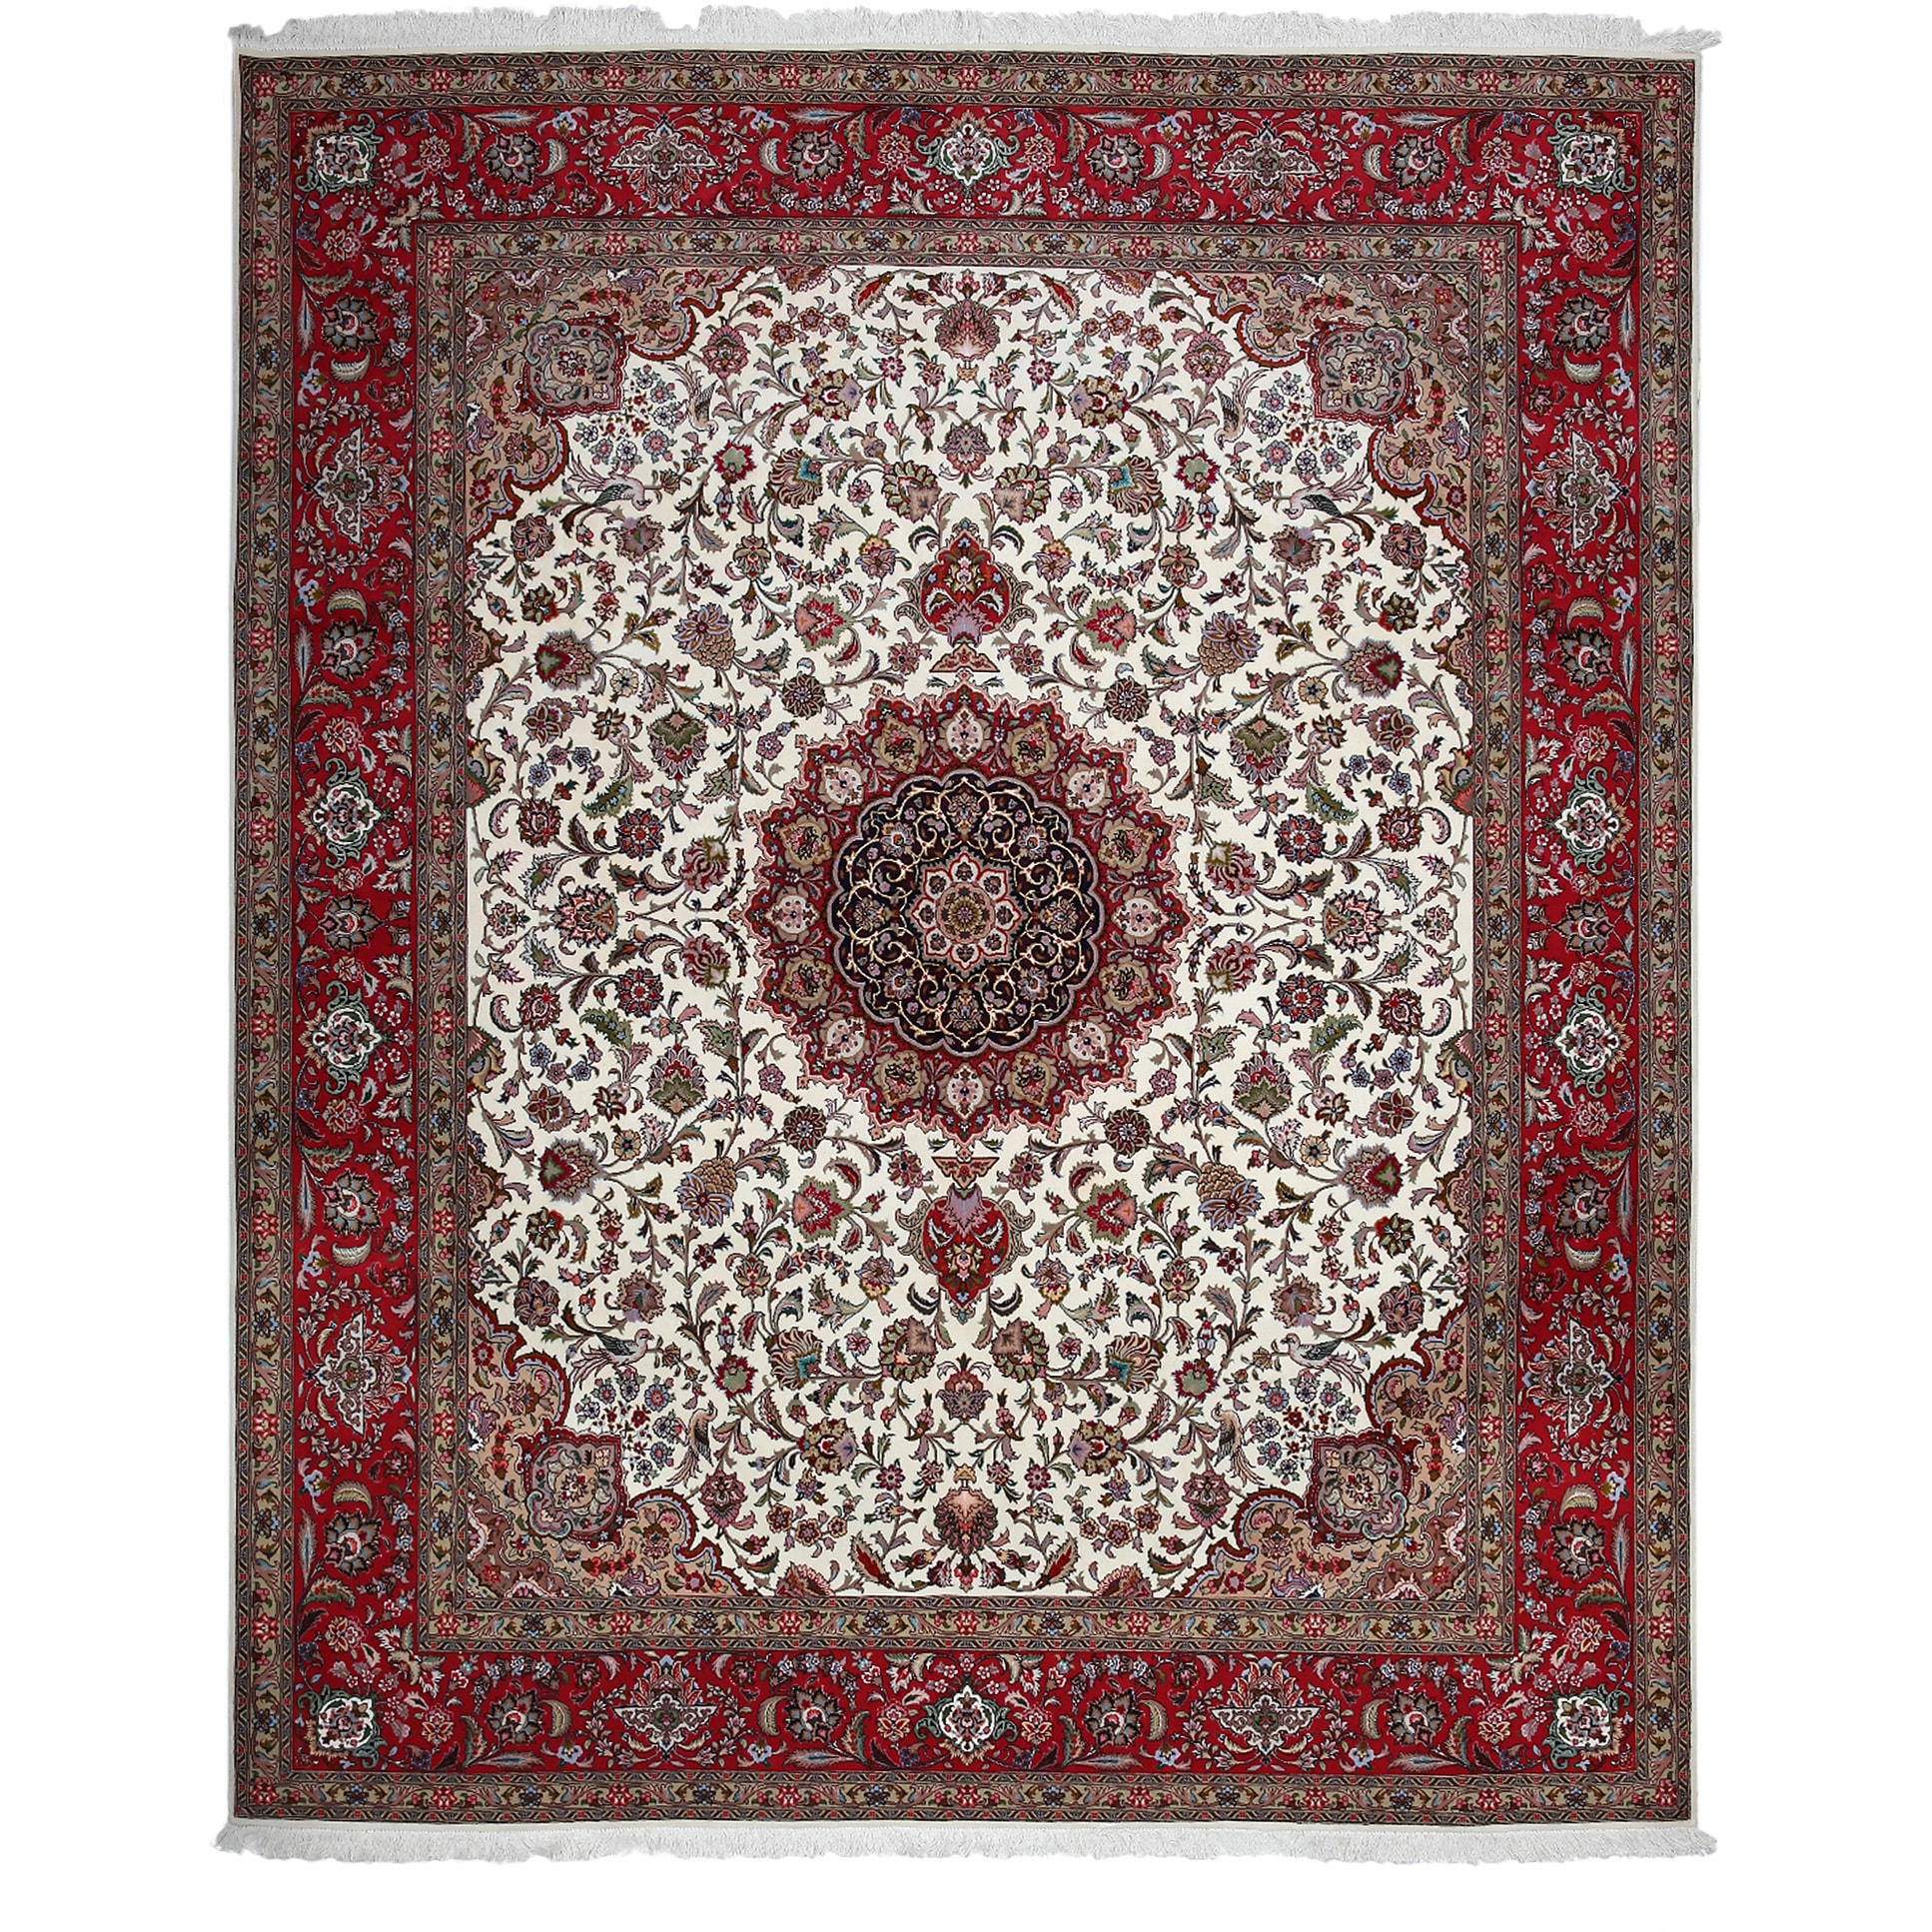 Madirut Red/White Wool Hand-knotted Oriental Area Rug (8'2 x 9'10)